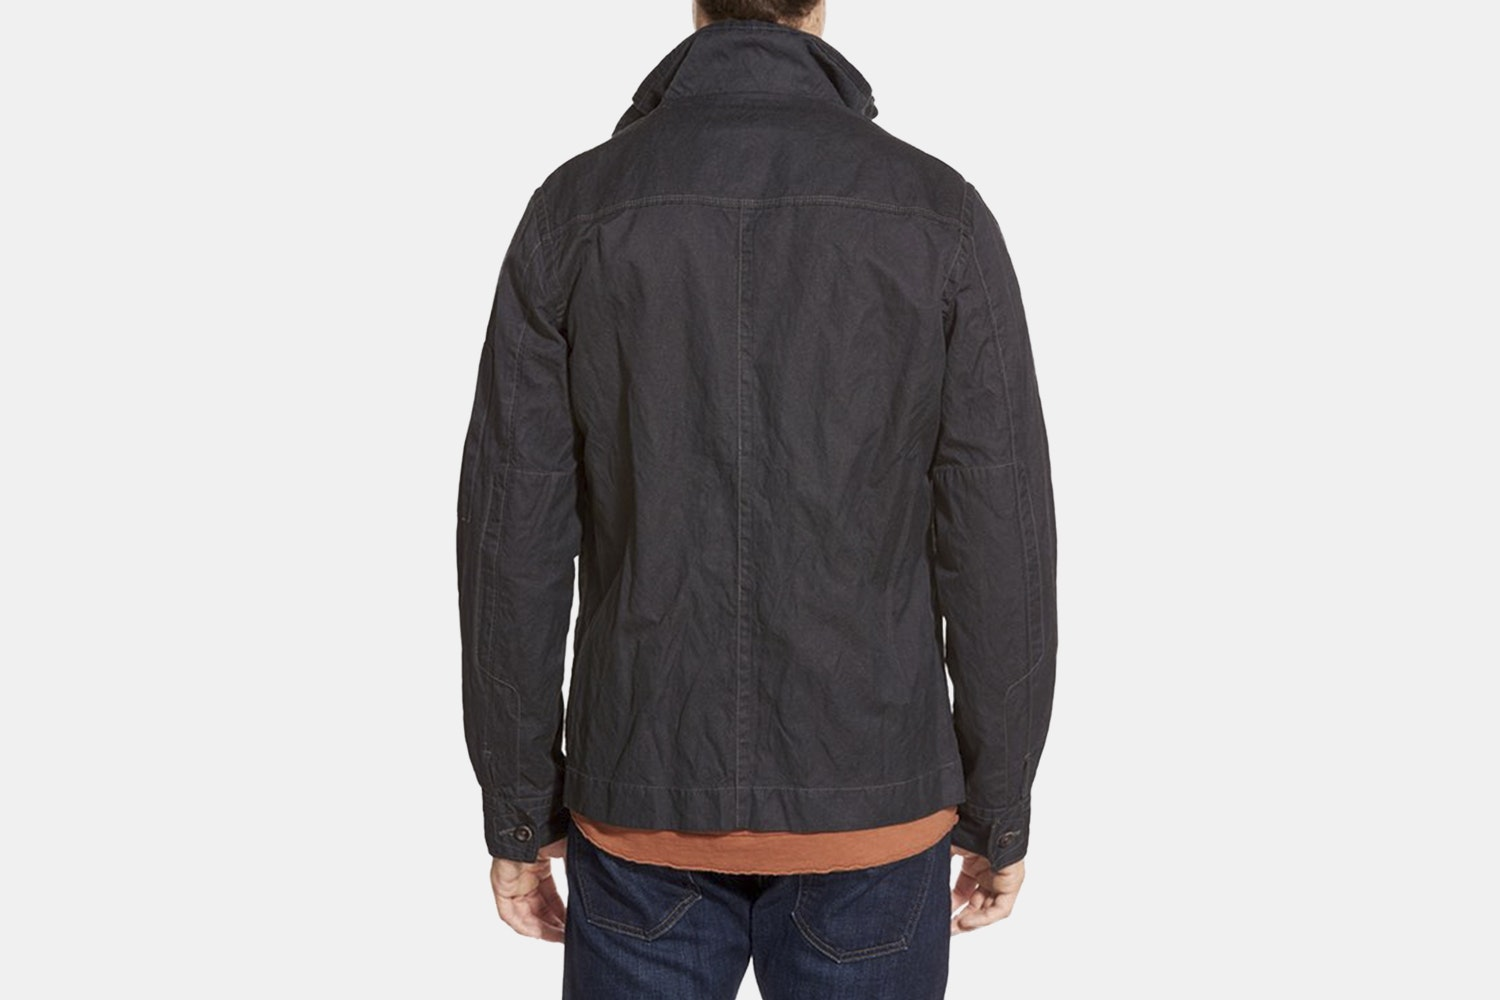 Jeremiah Thorne Coated Canvas Jacket